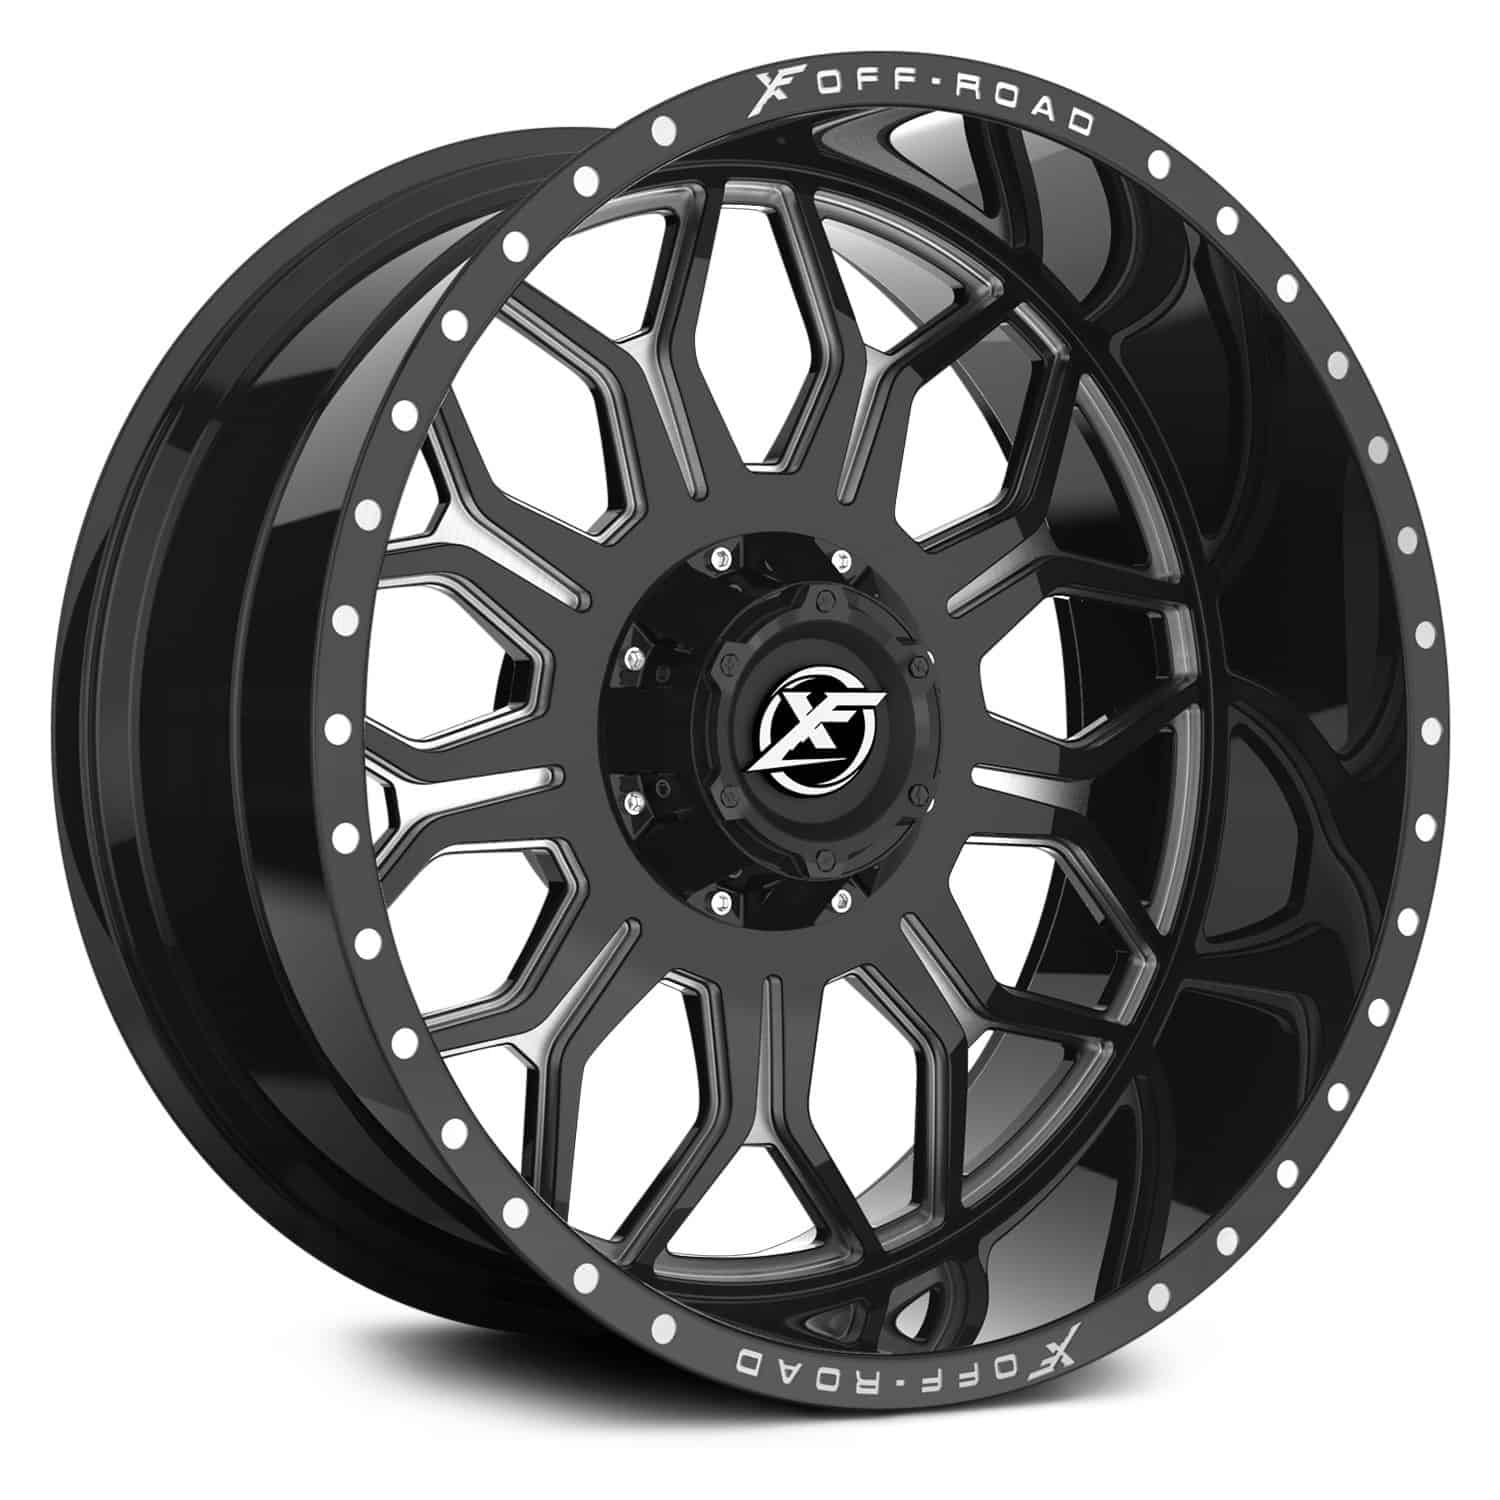 Xf Offroad Xf 227 Gloss Black And Milled Lowest Prices Extreme Wheels